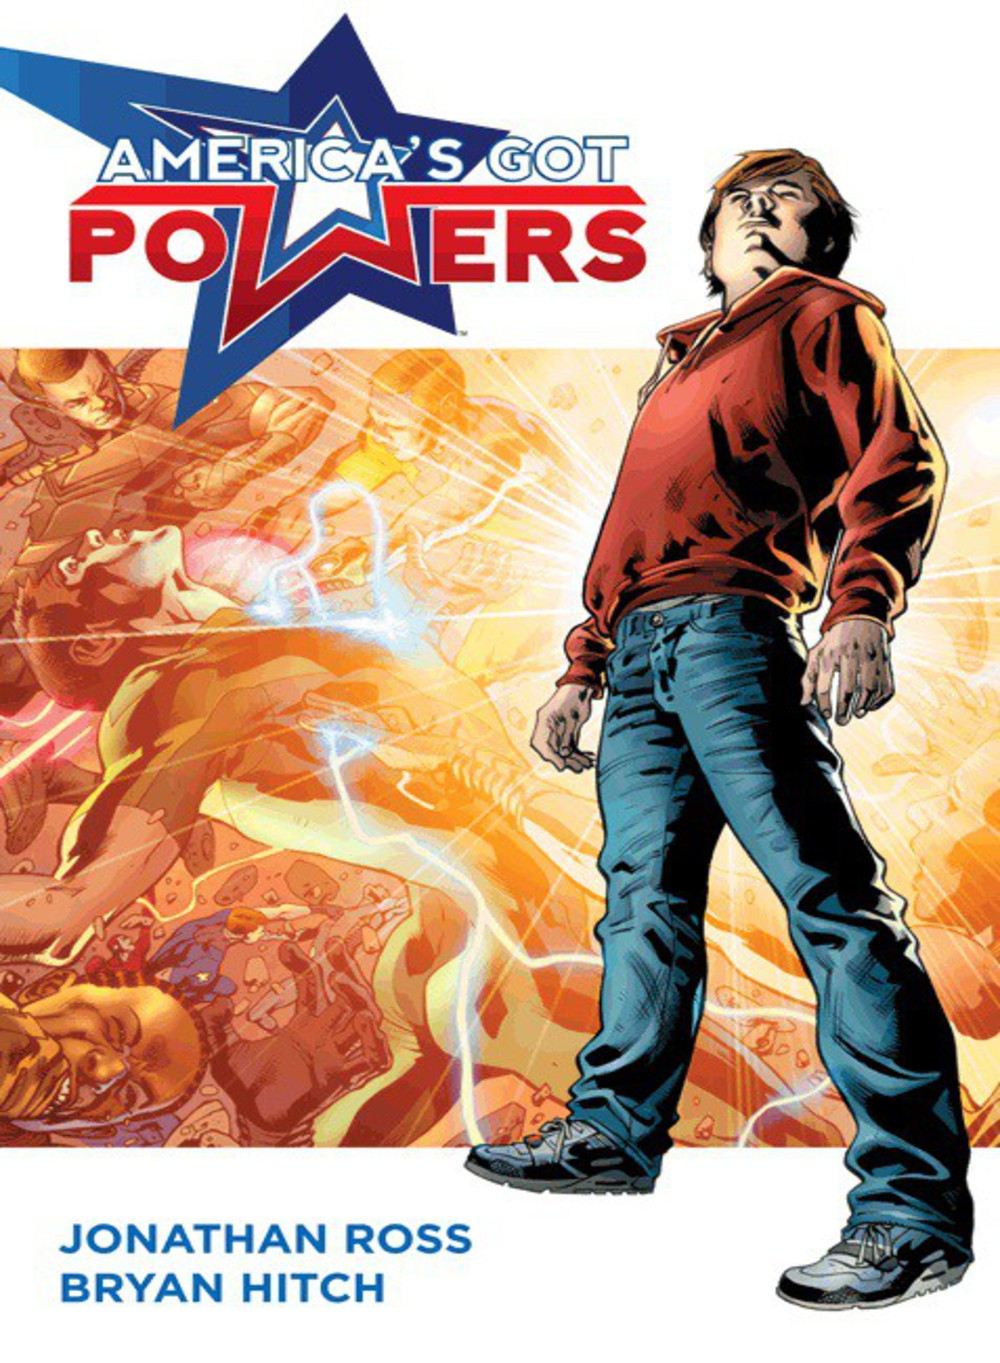 america_s_got_power_tome_1-4e9a52d